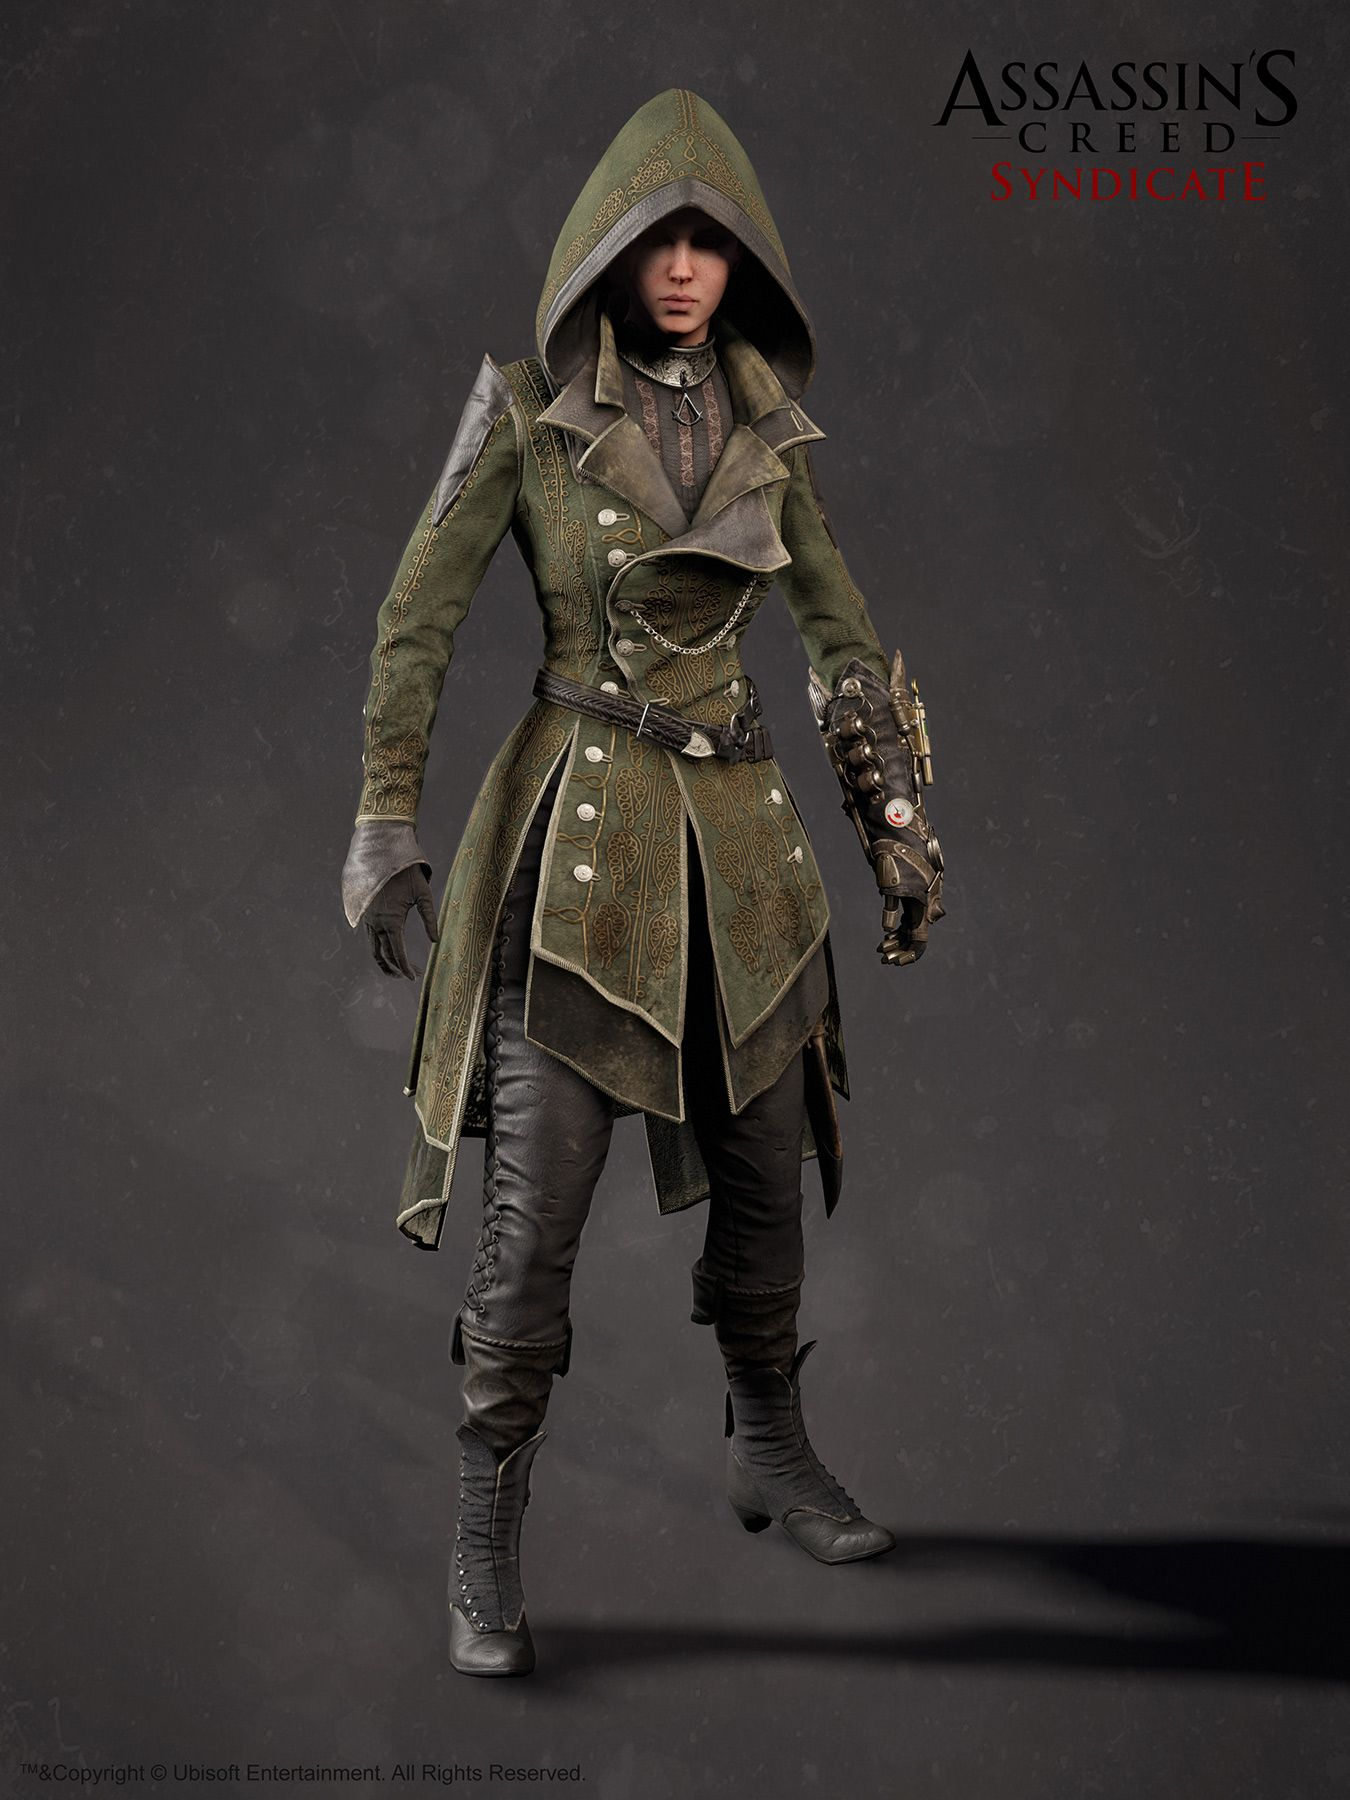 Assassin S Creed Syndicate Character Team Post Page 2 Assassins Creed Outfit Assassins Creed Cosplay Assassins Creed Female